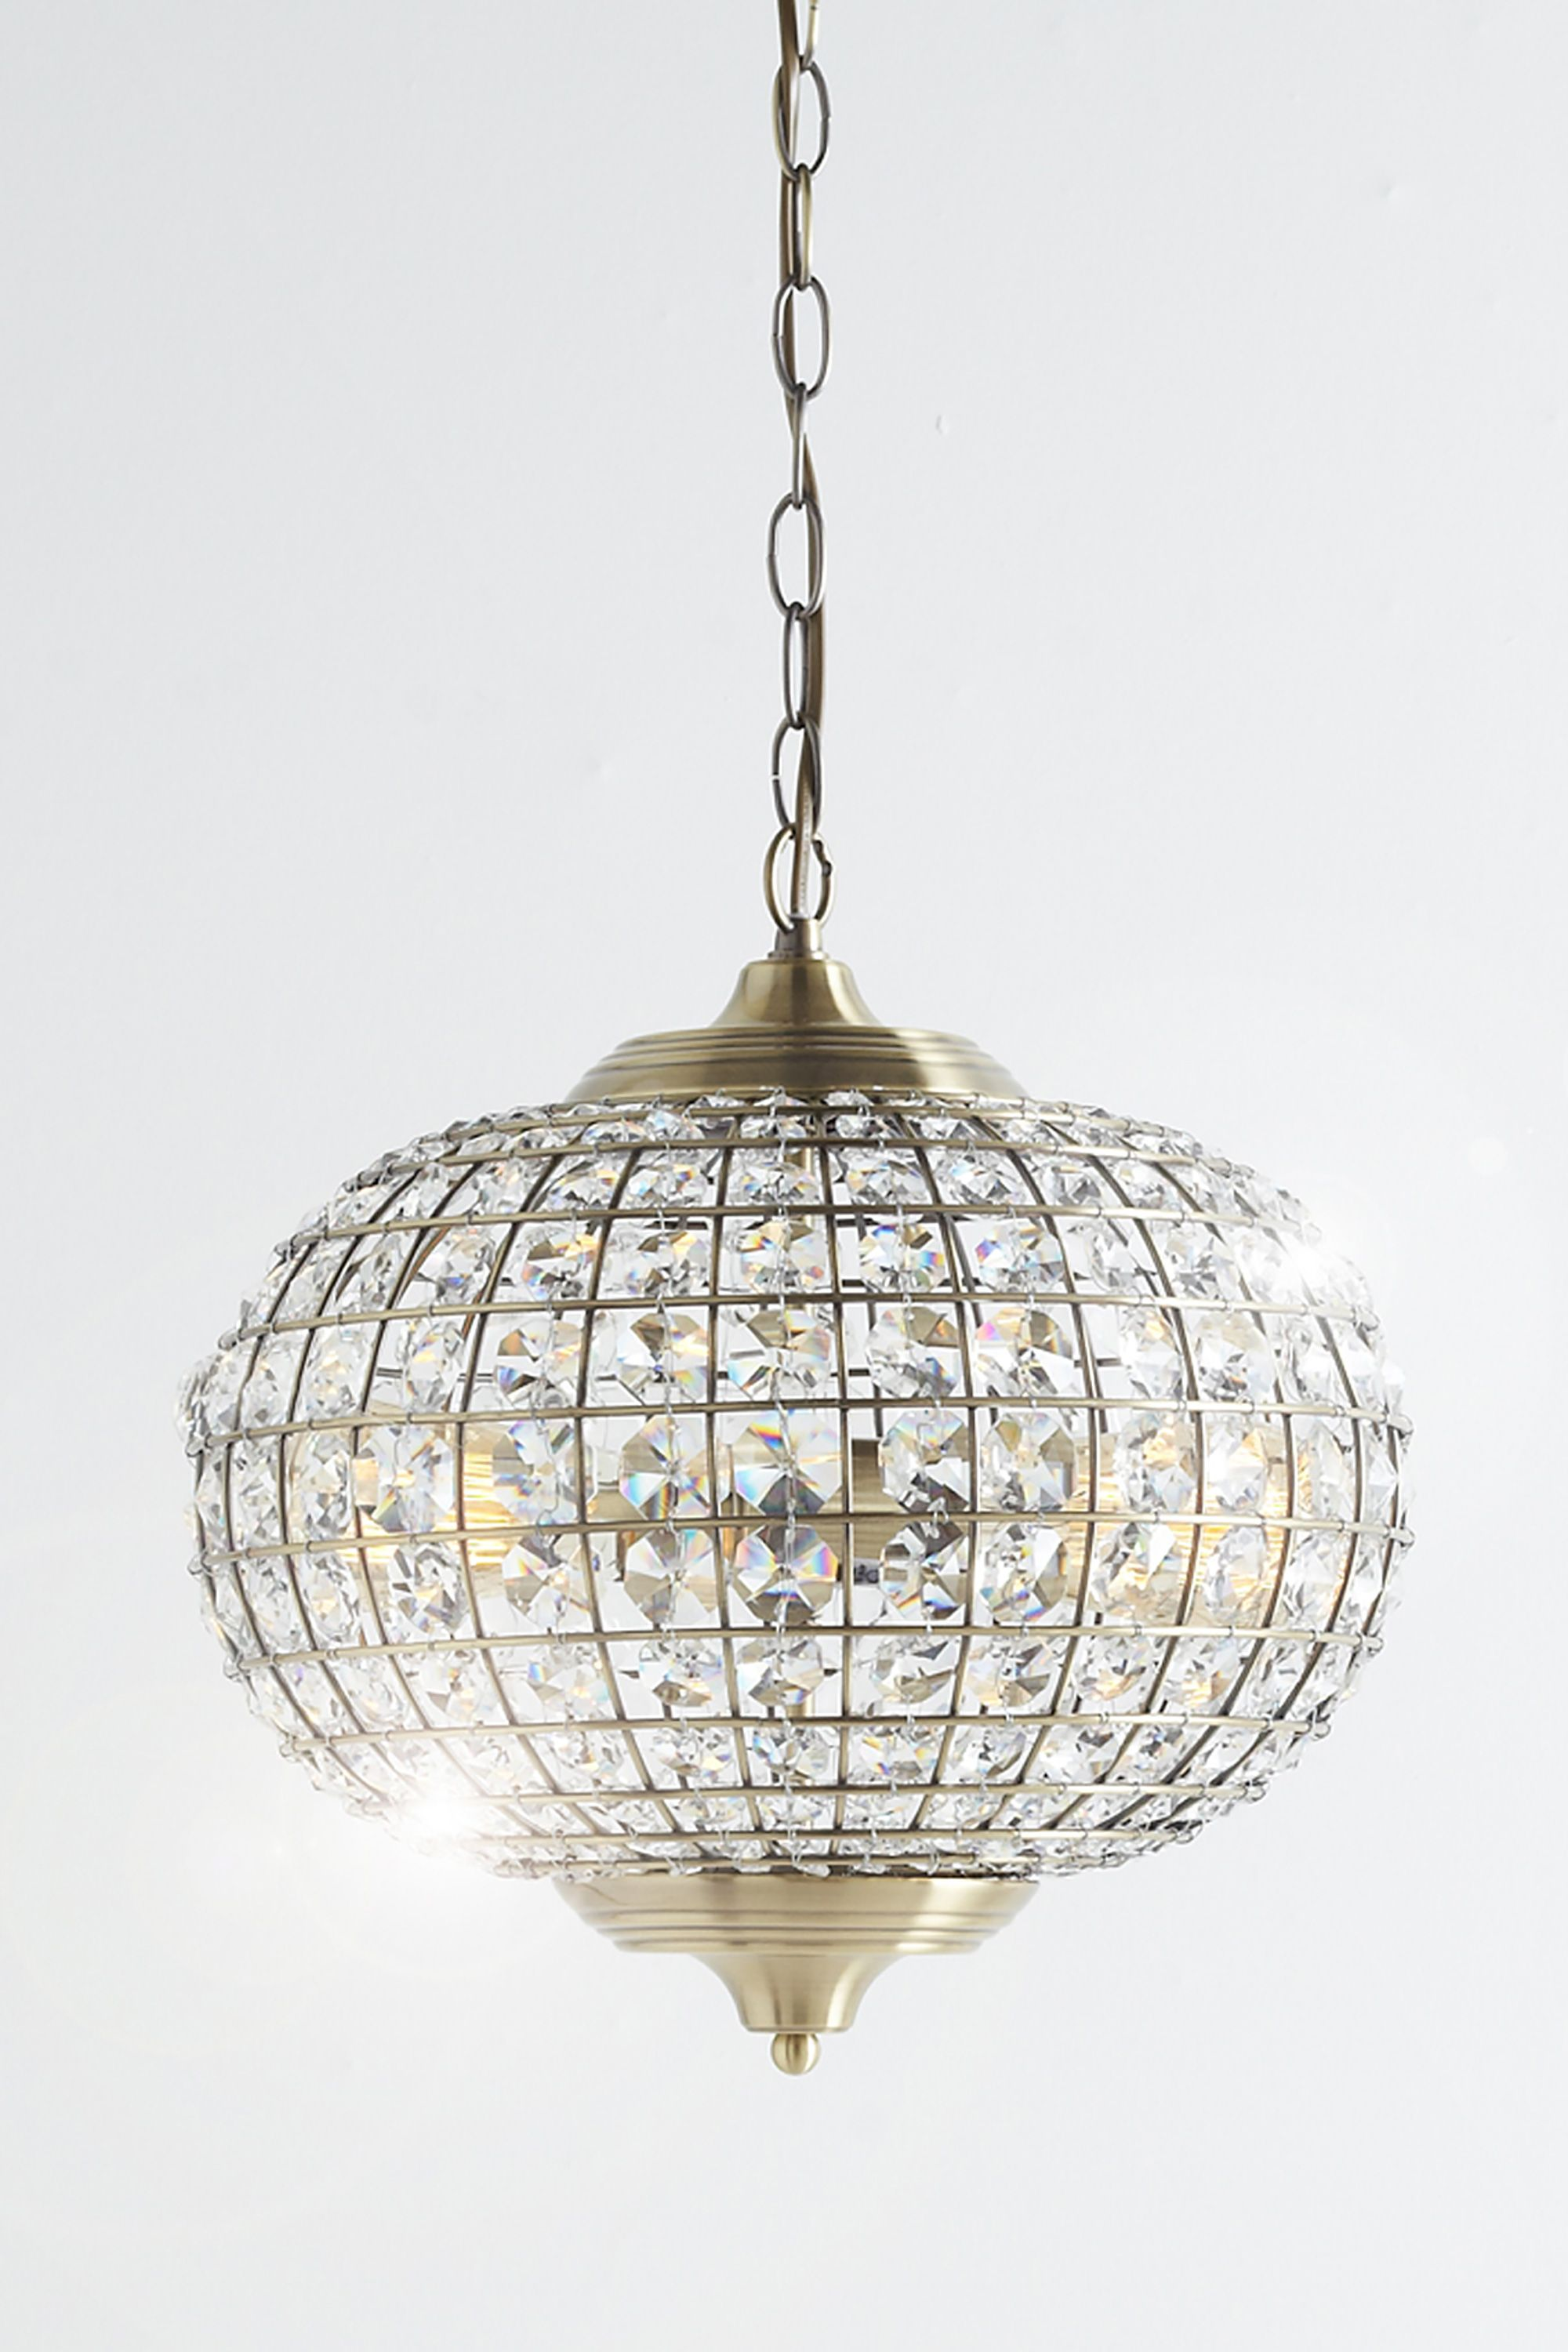 Pandora ball pendant light bhs pinterest bhs pendant pandora ball pendant light bhs aloadofball Image collections